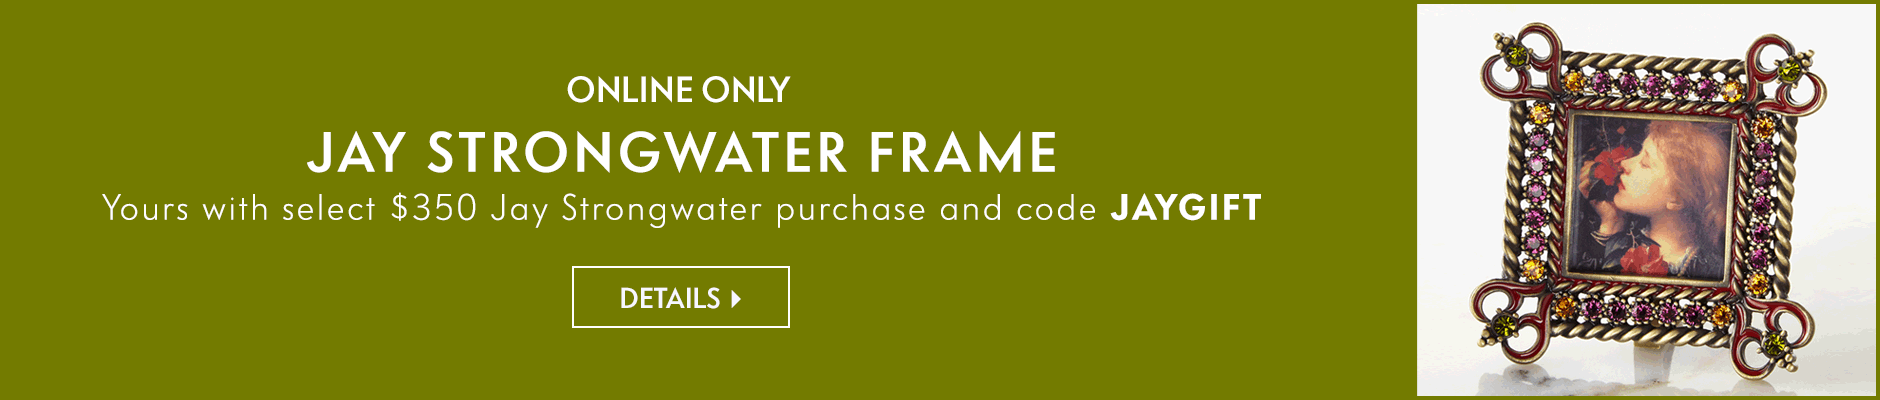 Jay Strongwater frame, yours with select $350 Jay Strongwater purchase and code JAYGIFT